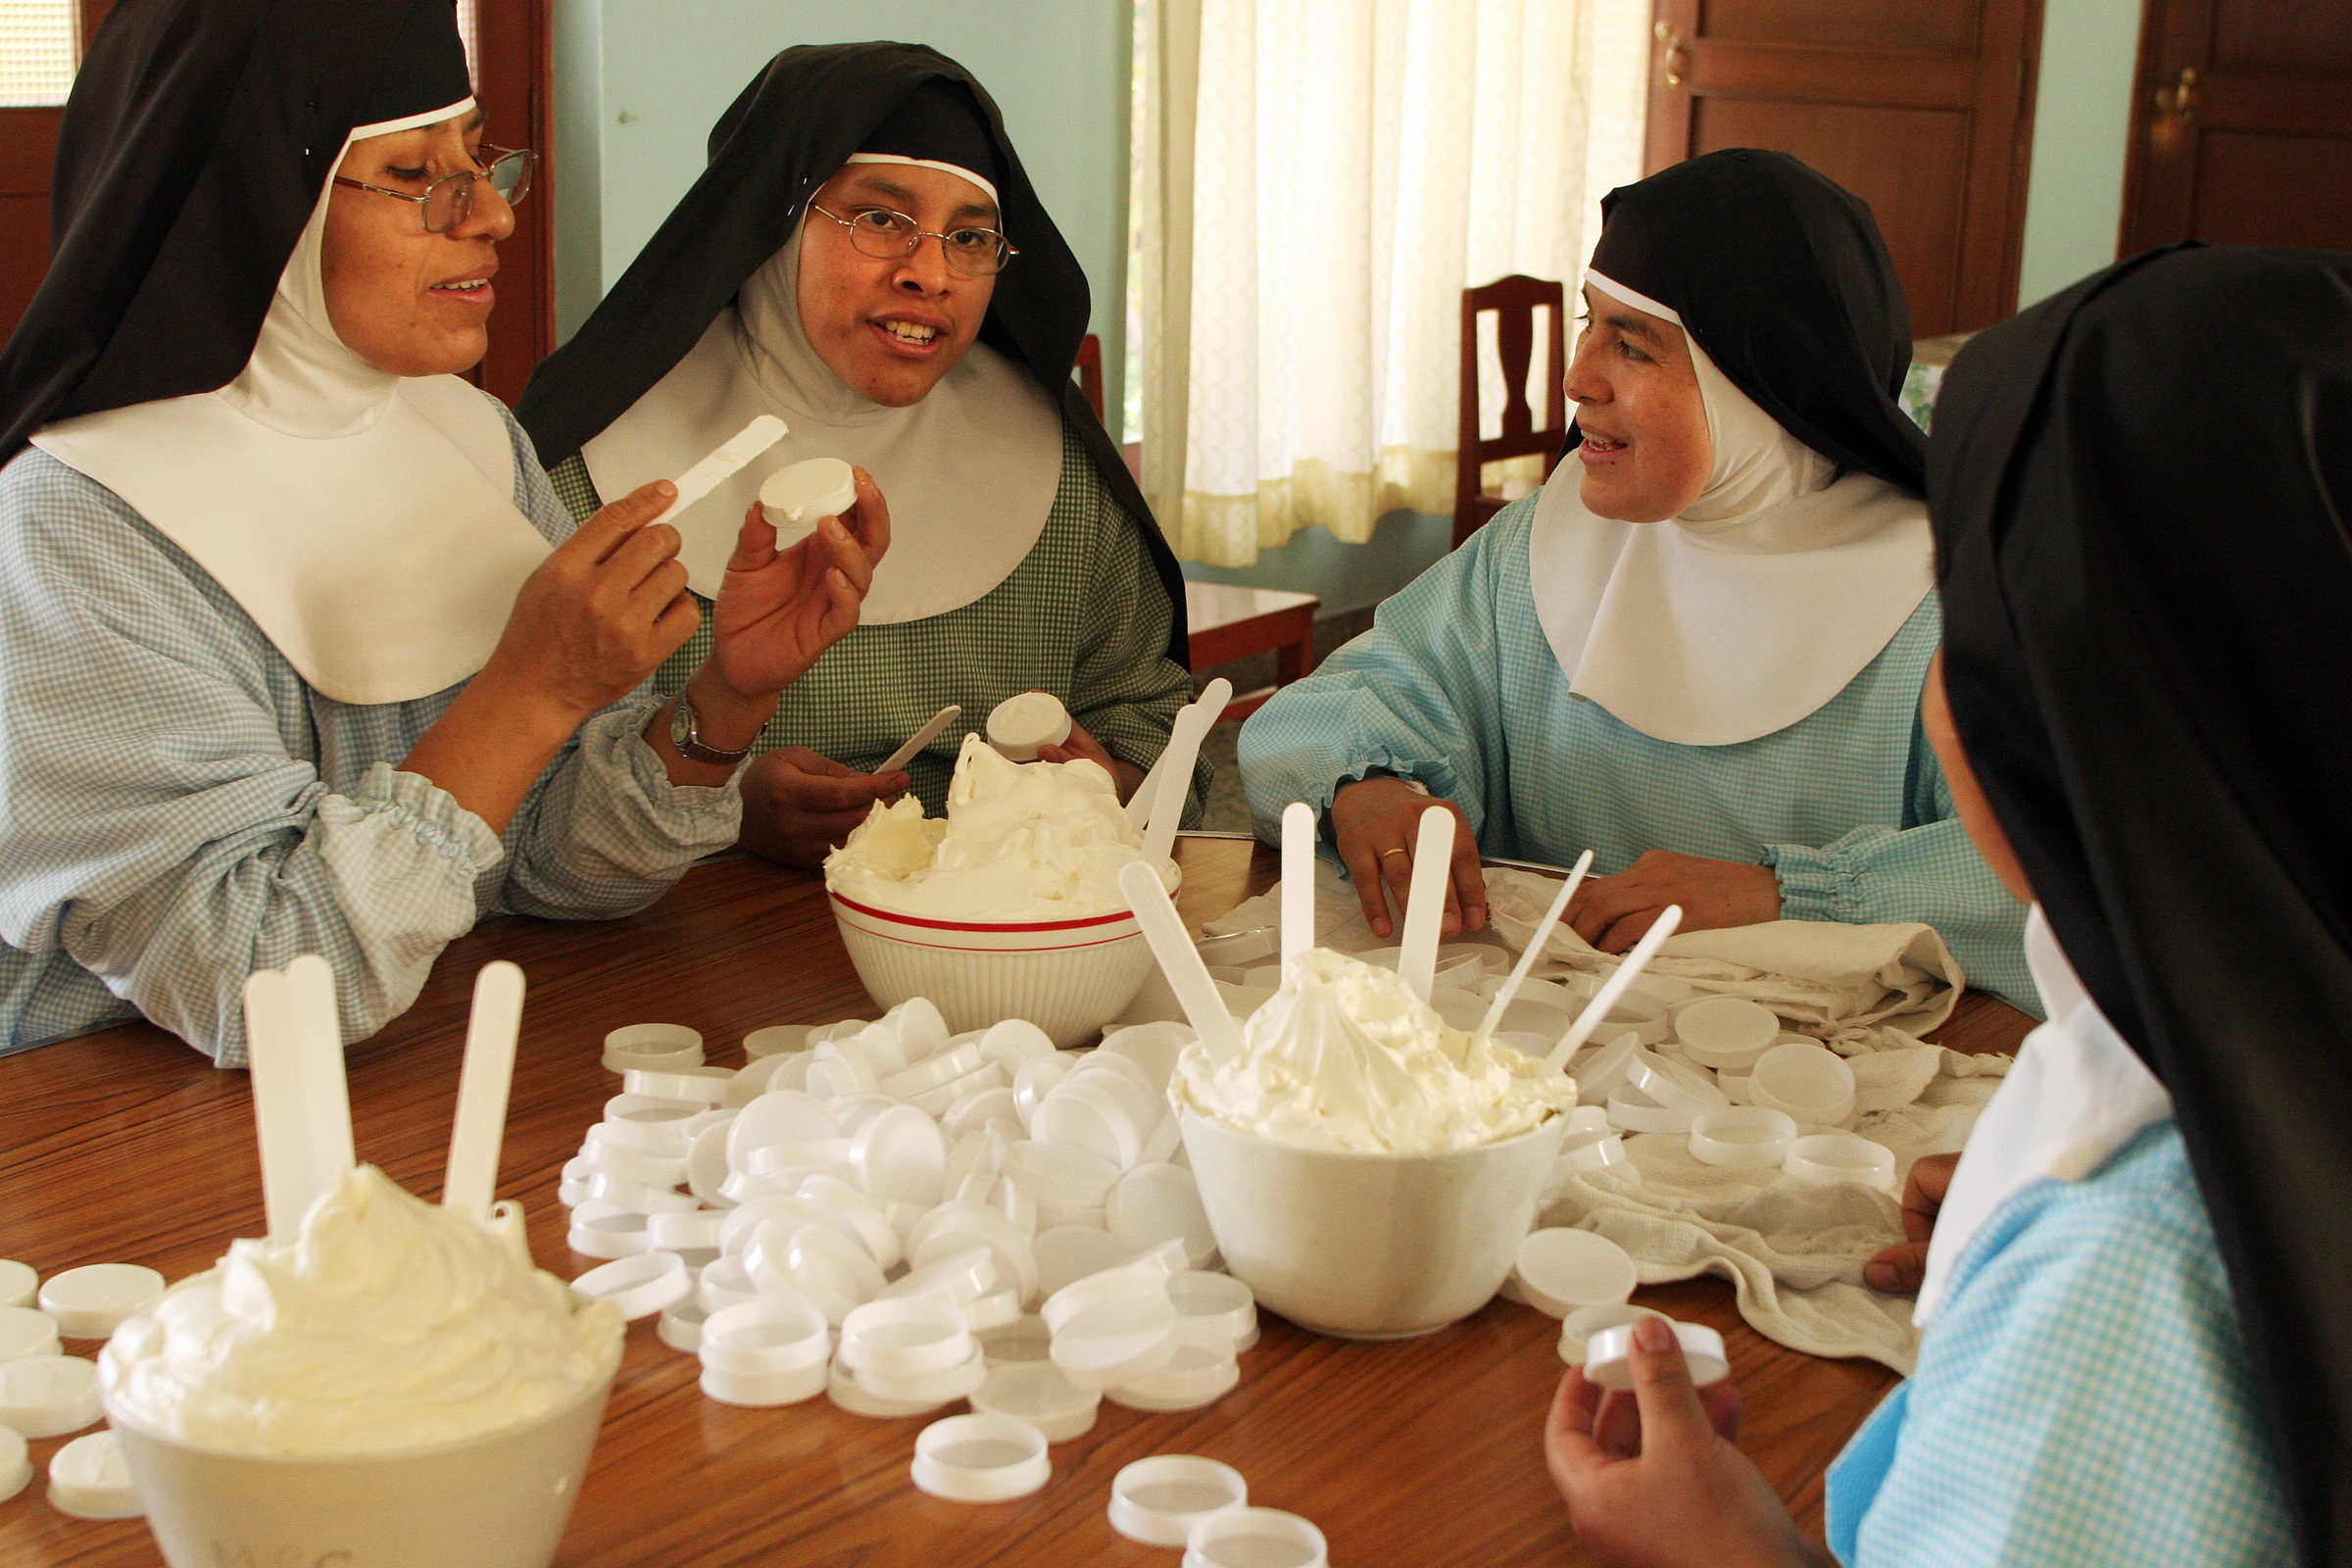 Nuns make rose cream , which will later be sold in the tourist section of the monastery. The profits from such handicrafts help support the nuns.